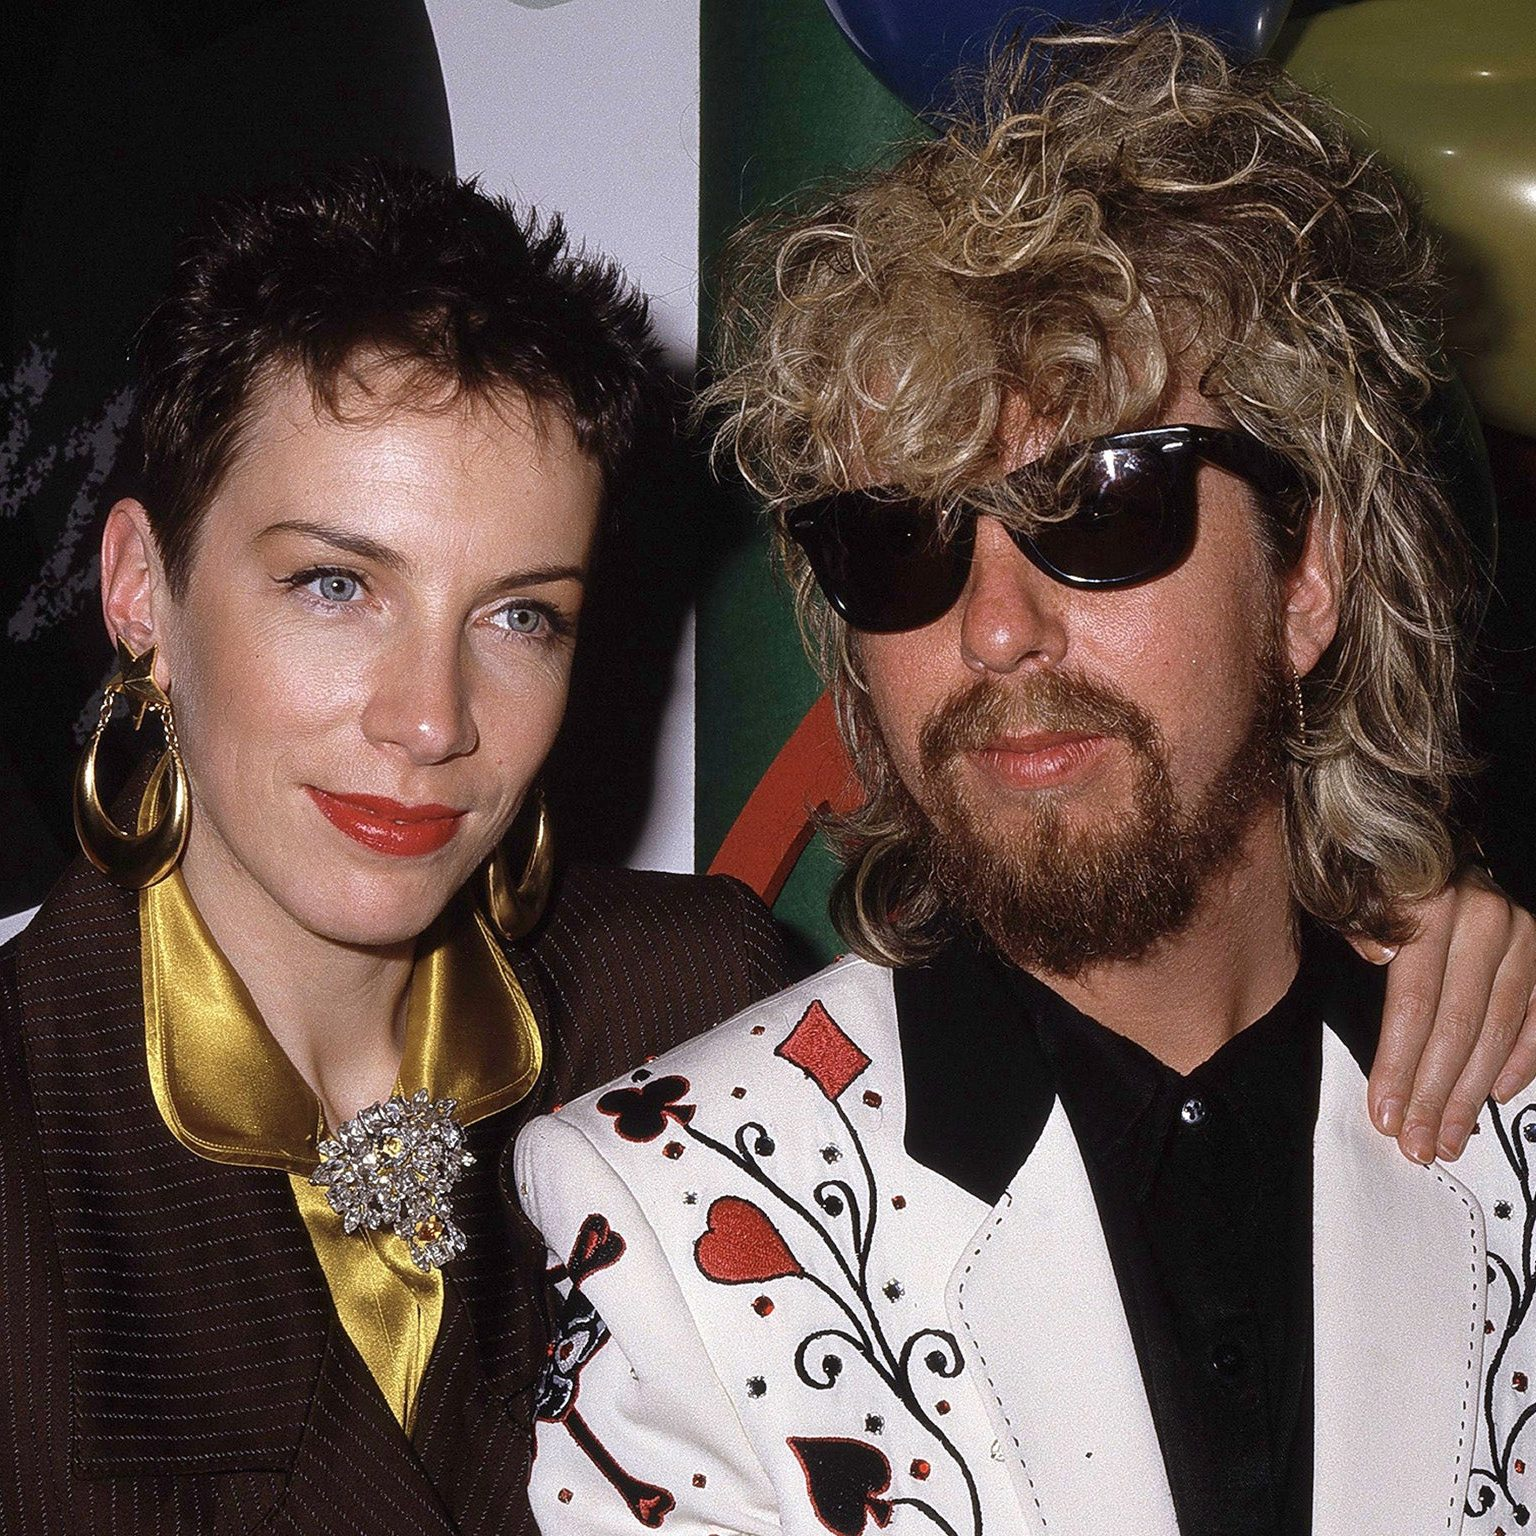 annie lennox dave stewart e1574423804781 20 Sweet Facts About Pop Icons Eurythmics